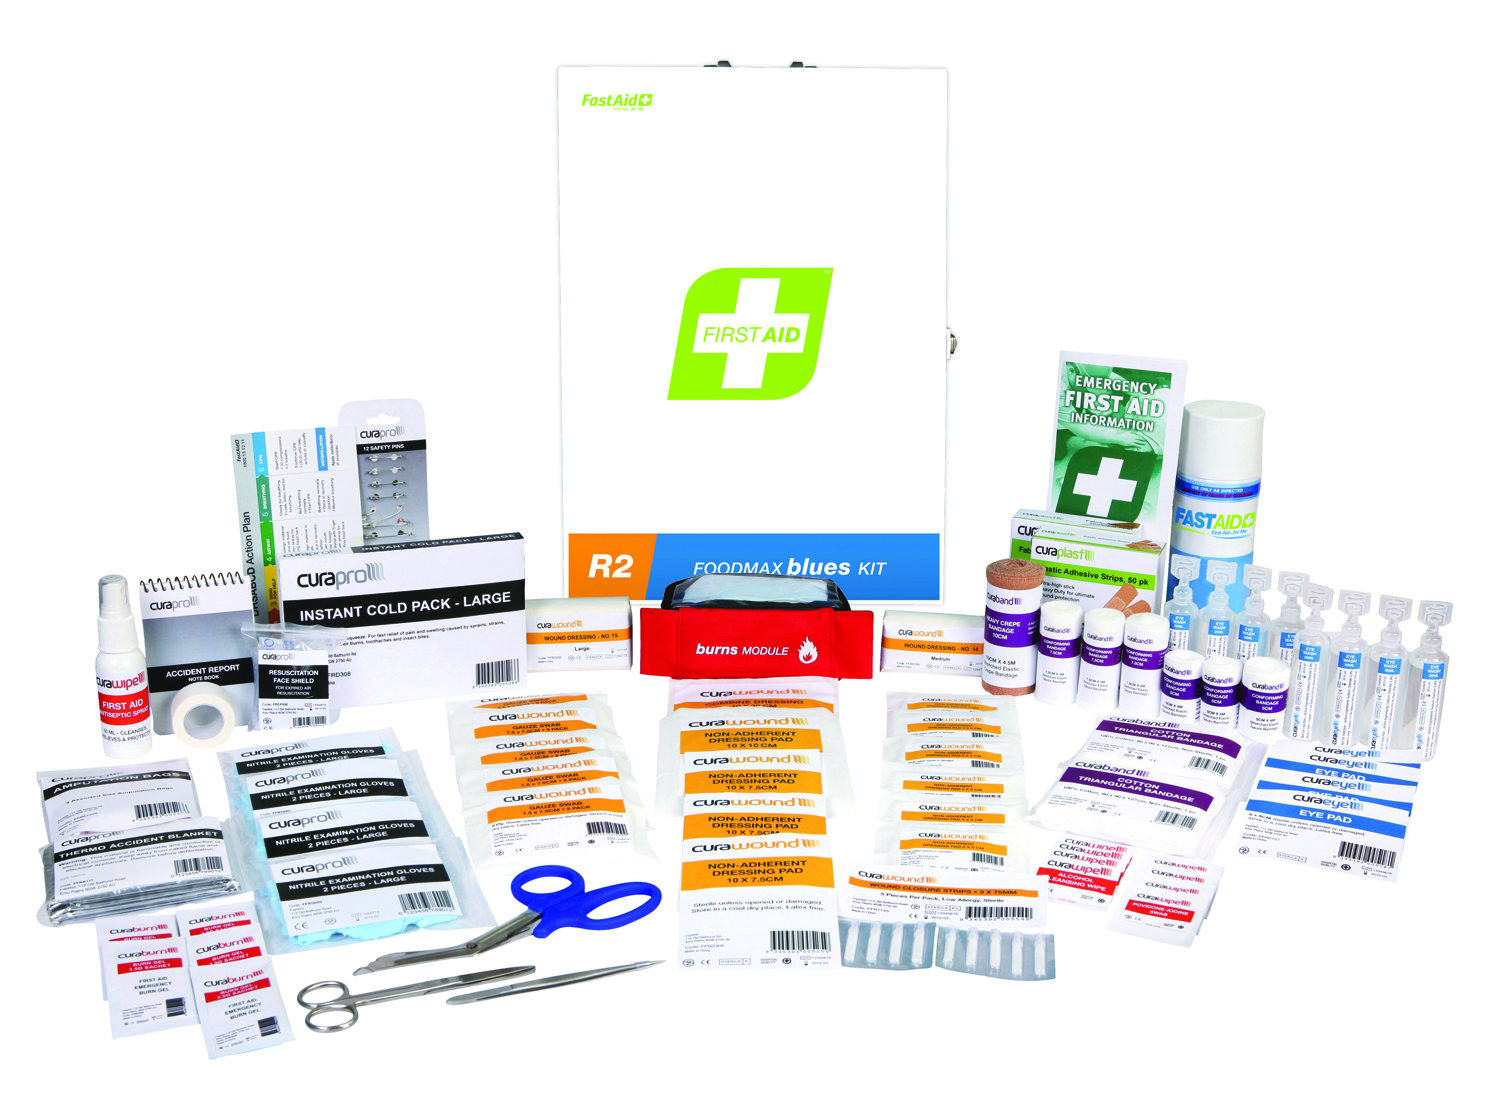 Kitchen workers portable first aid kit for First aid kits for restaurant kitchens